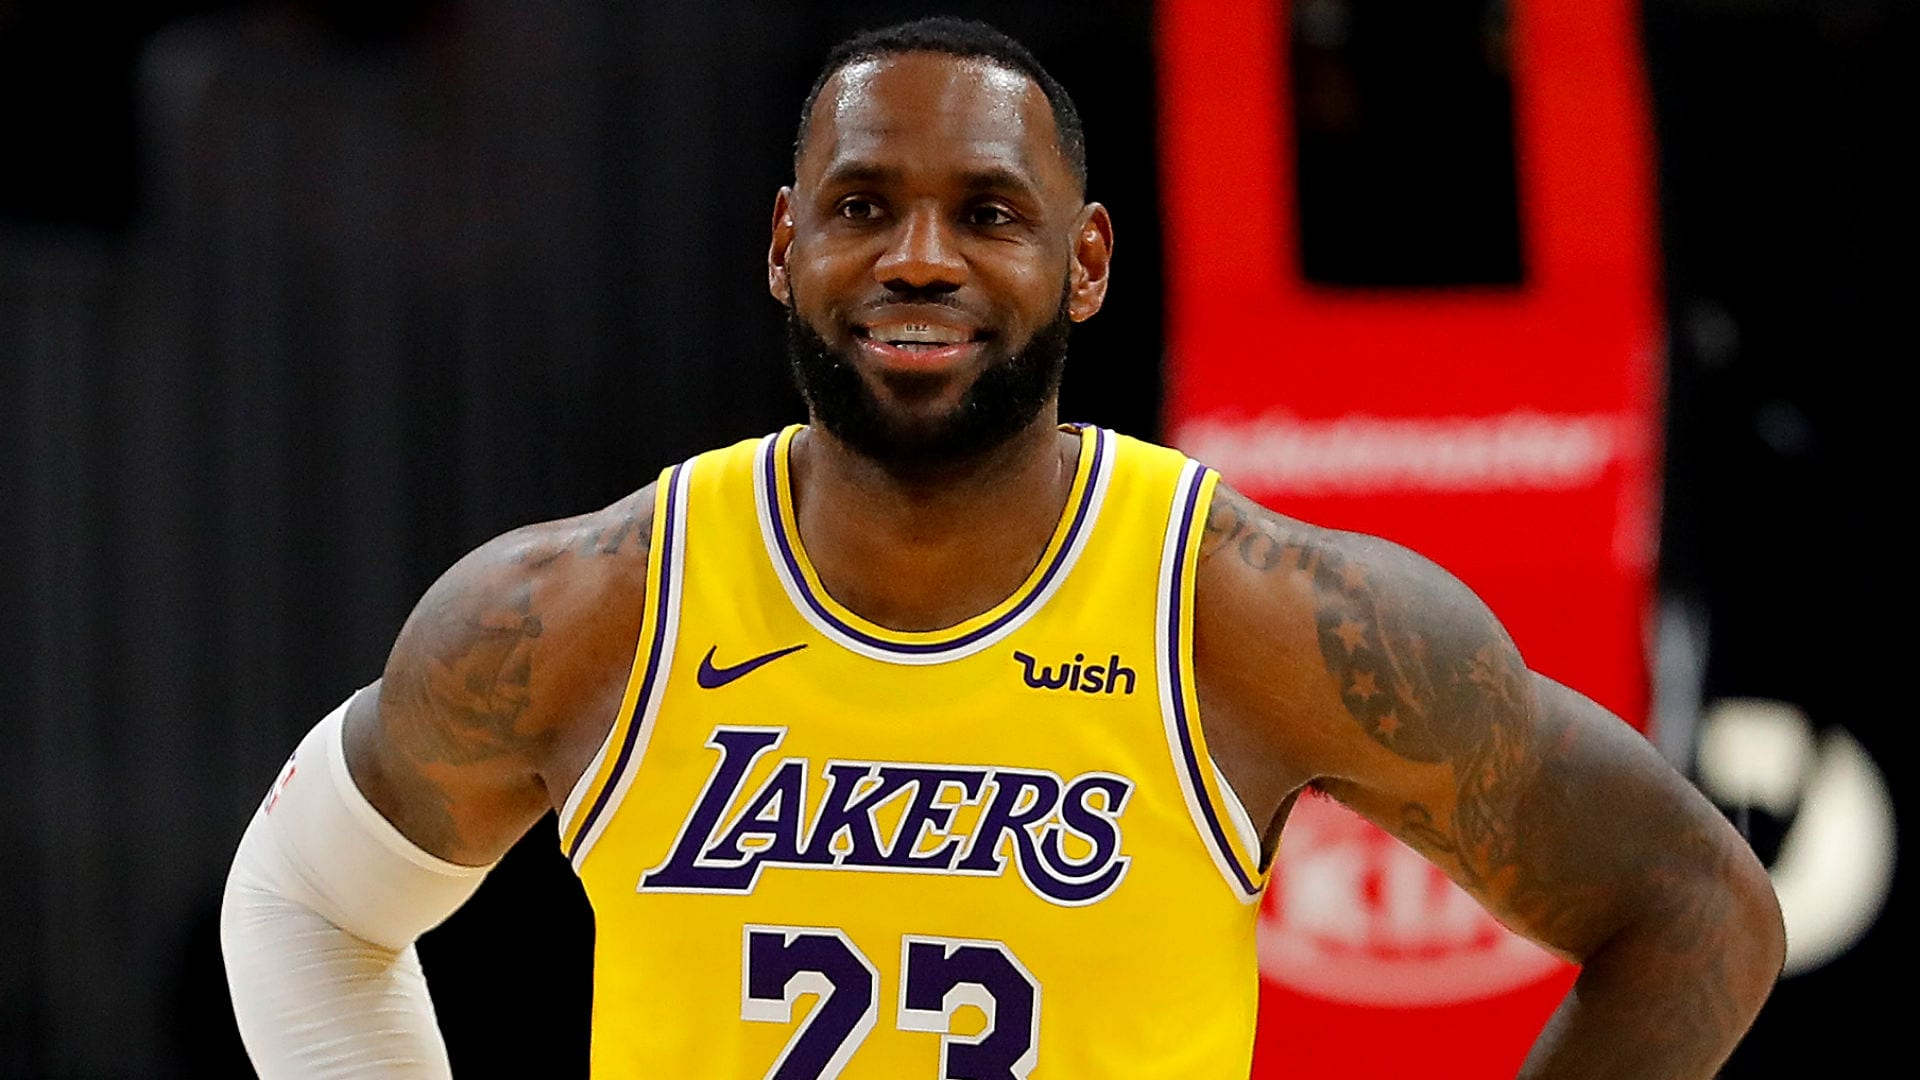 LeBron James Named TIME Magazine's 'Athlete of the Year' for 2020